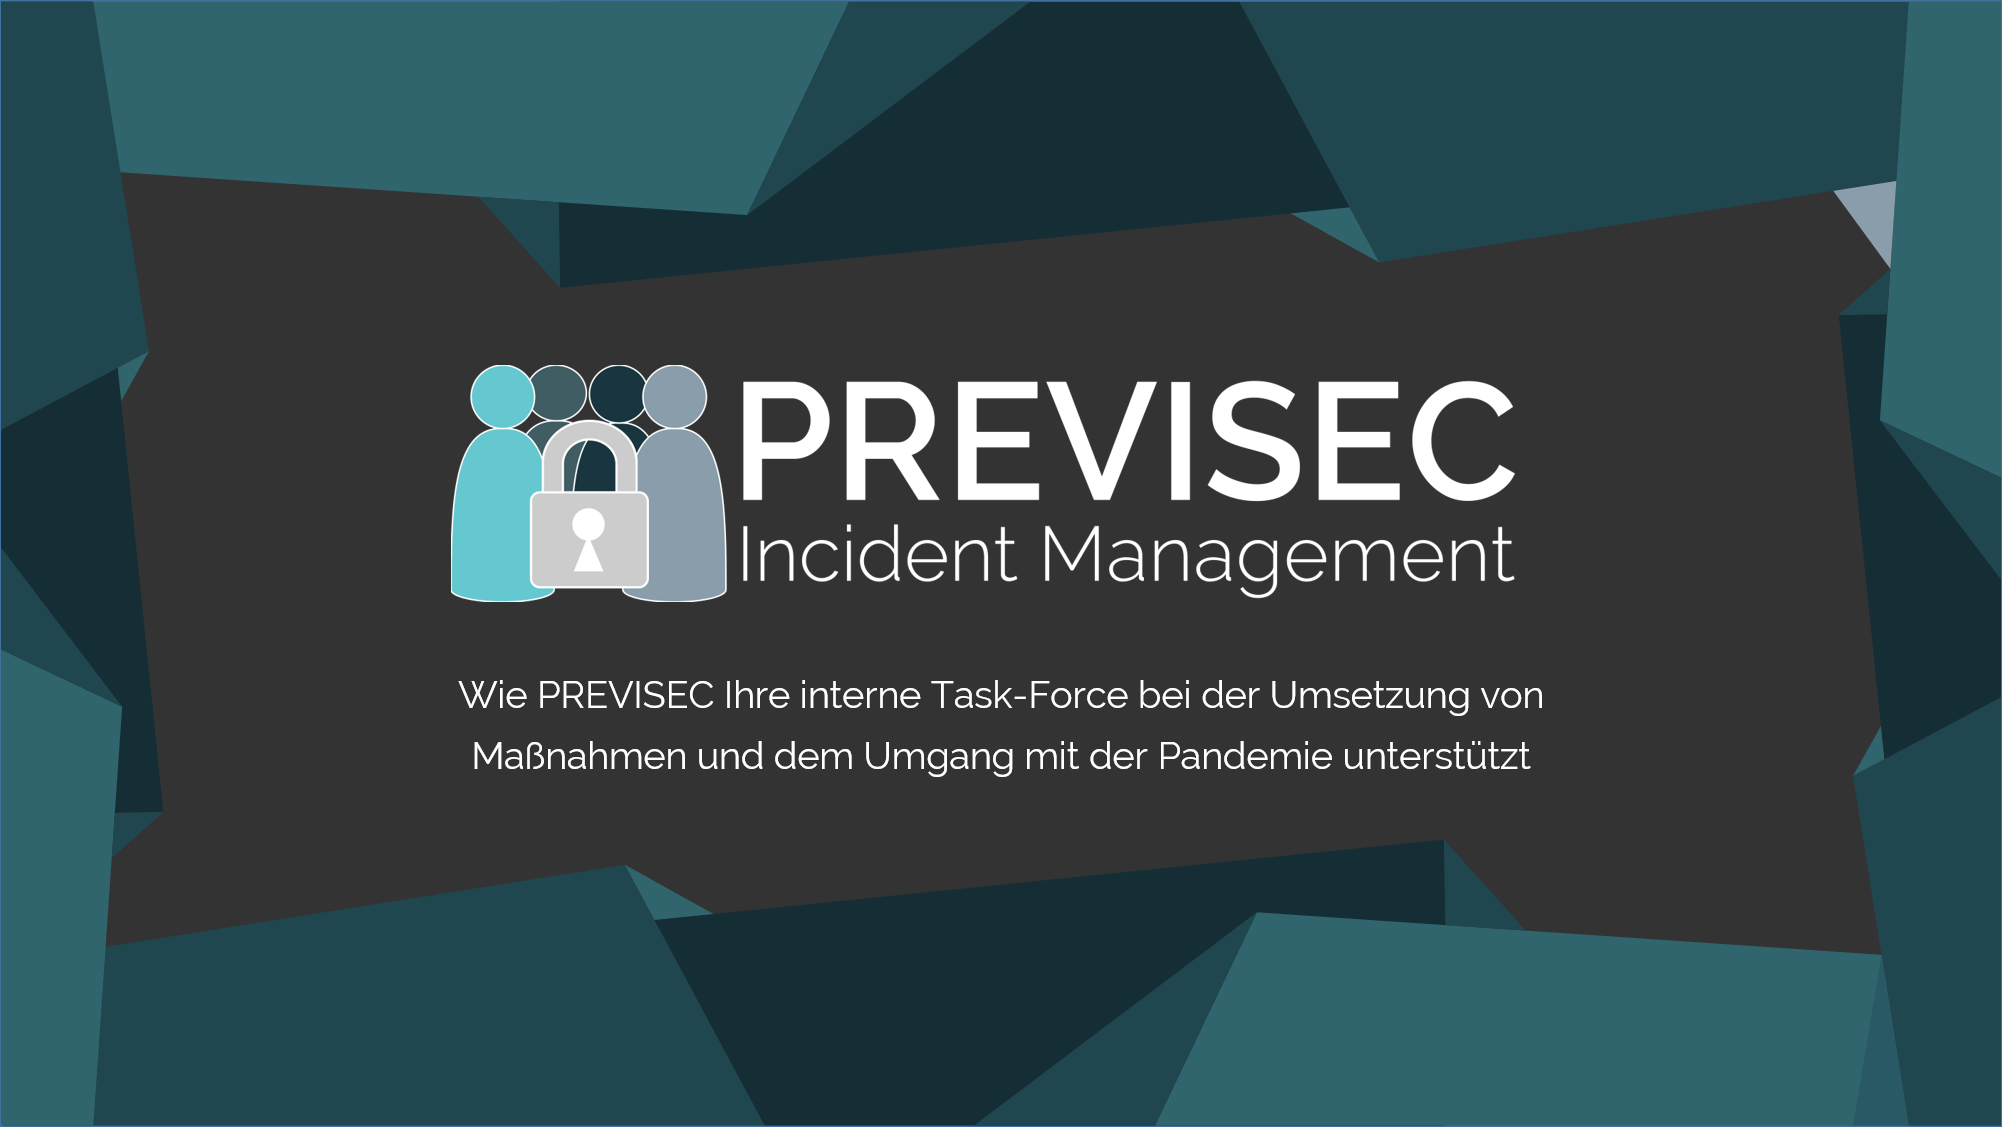 PREVISEC Incident Management für Corona Task Force